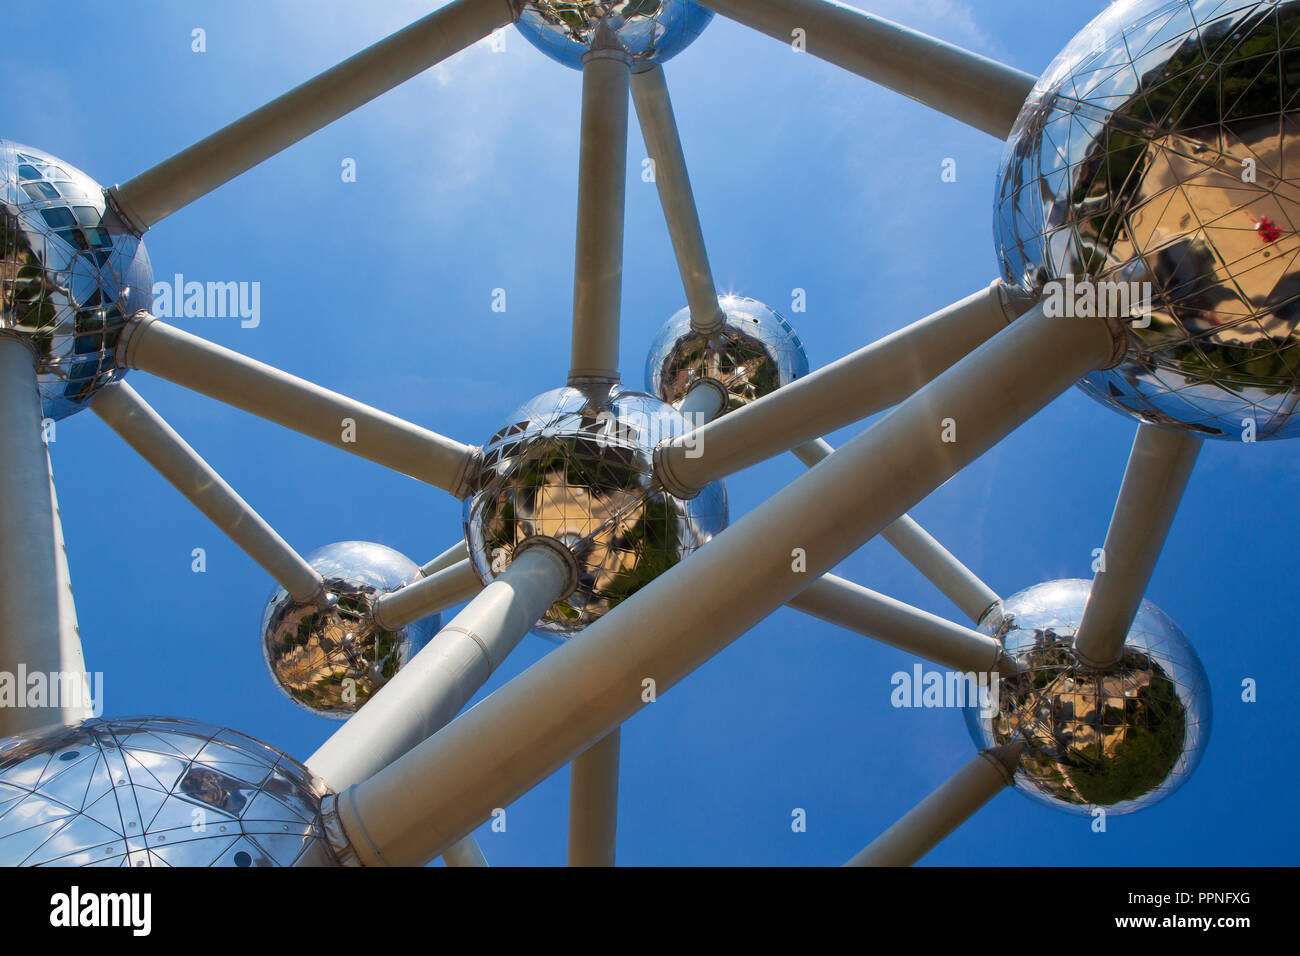 The Atomium, a landmark building in Brussels, Belgium originally constructed for the 1958 Brussels World's Fair. - Stock Image